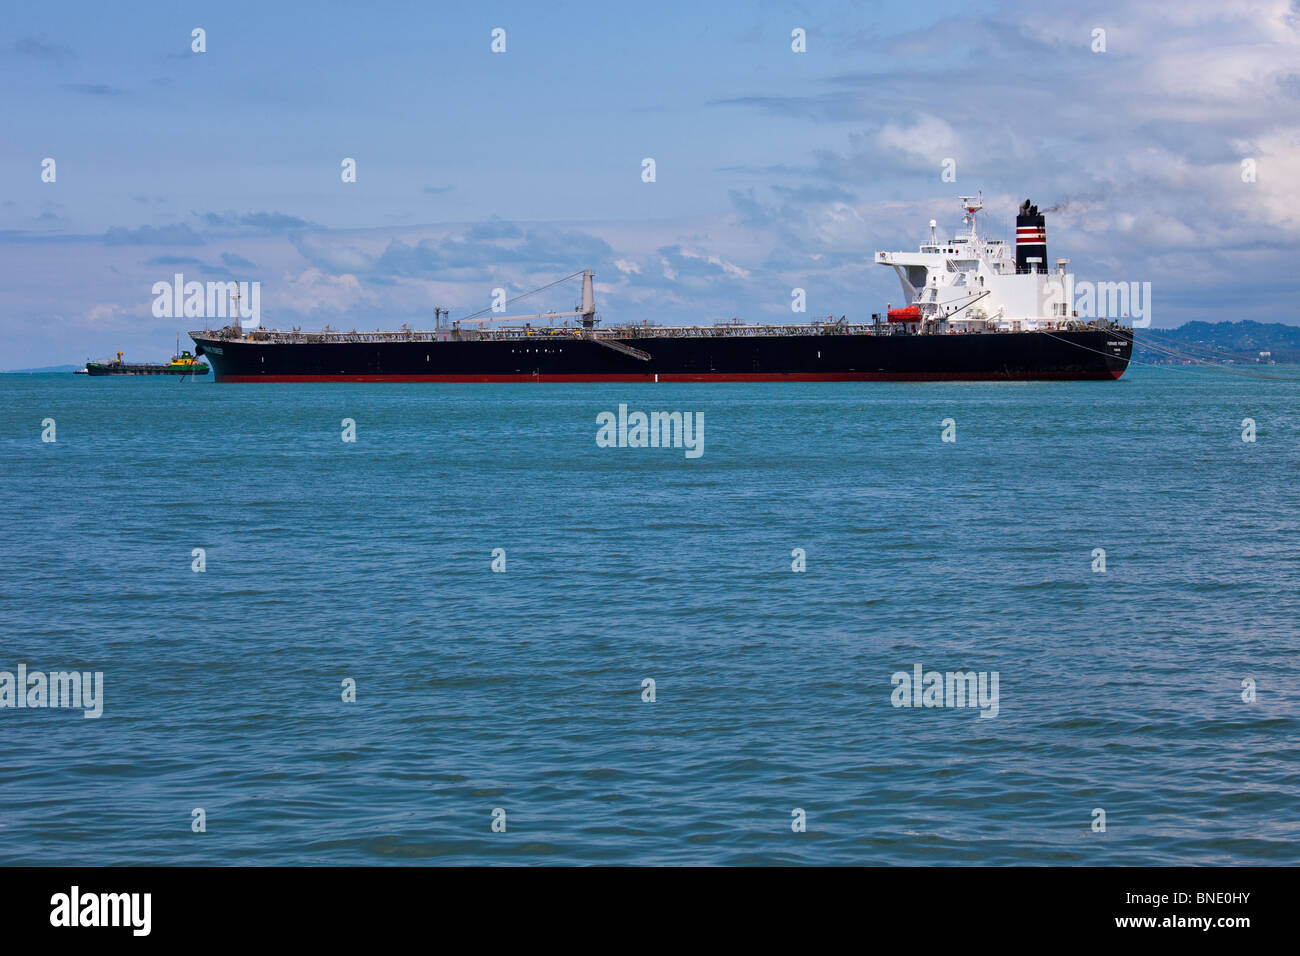 Ship at port in Batumi, Georgia - Stock Image